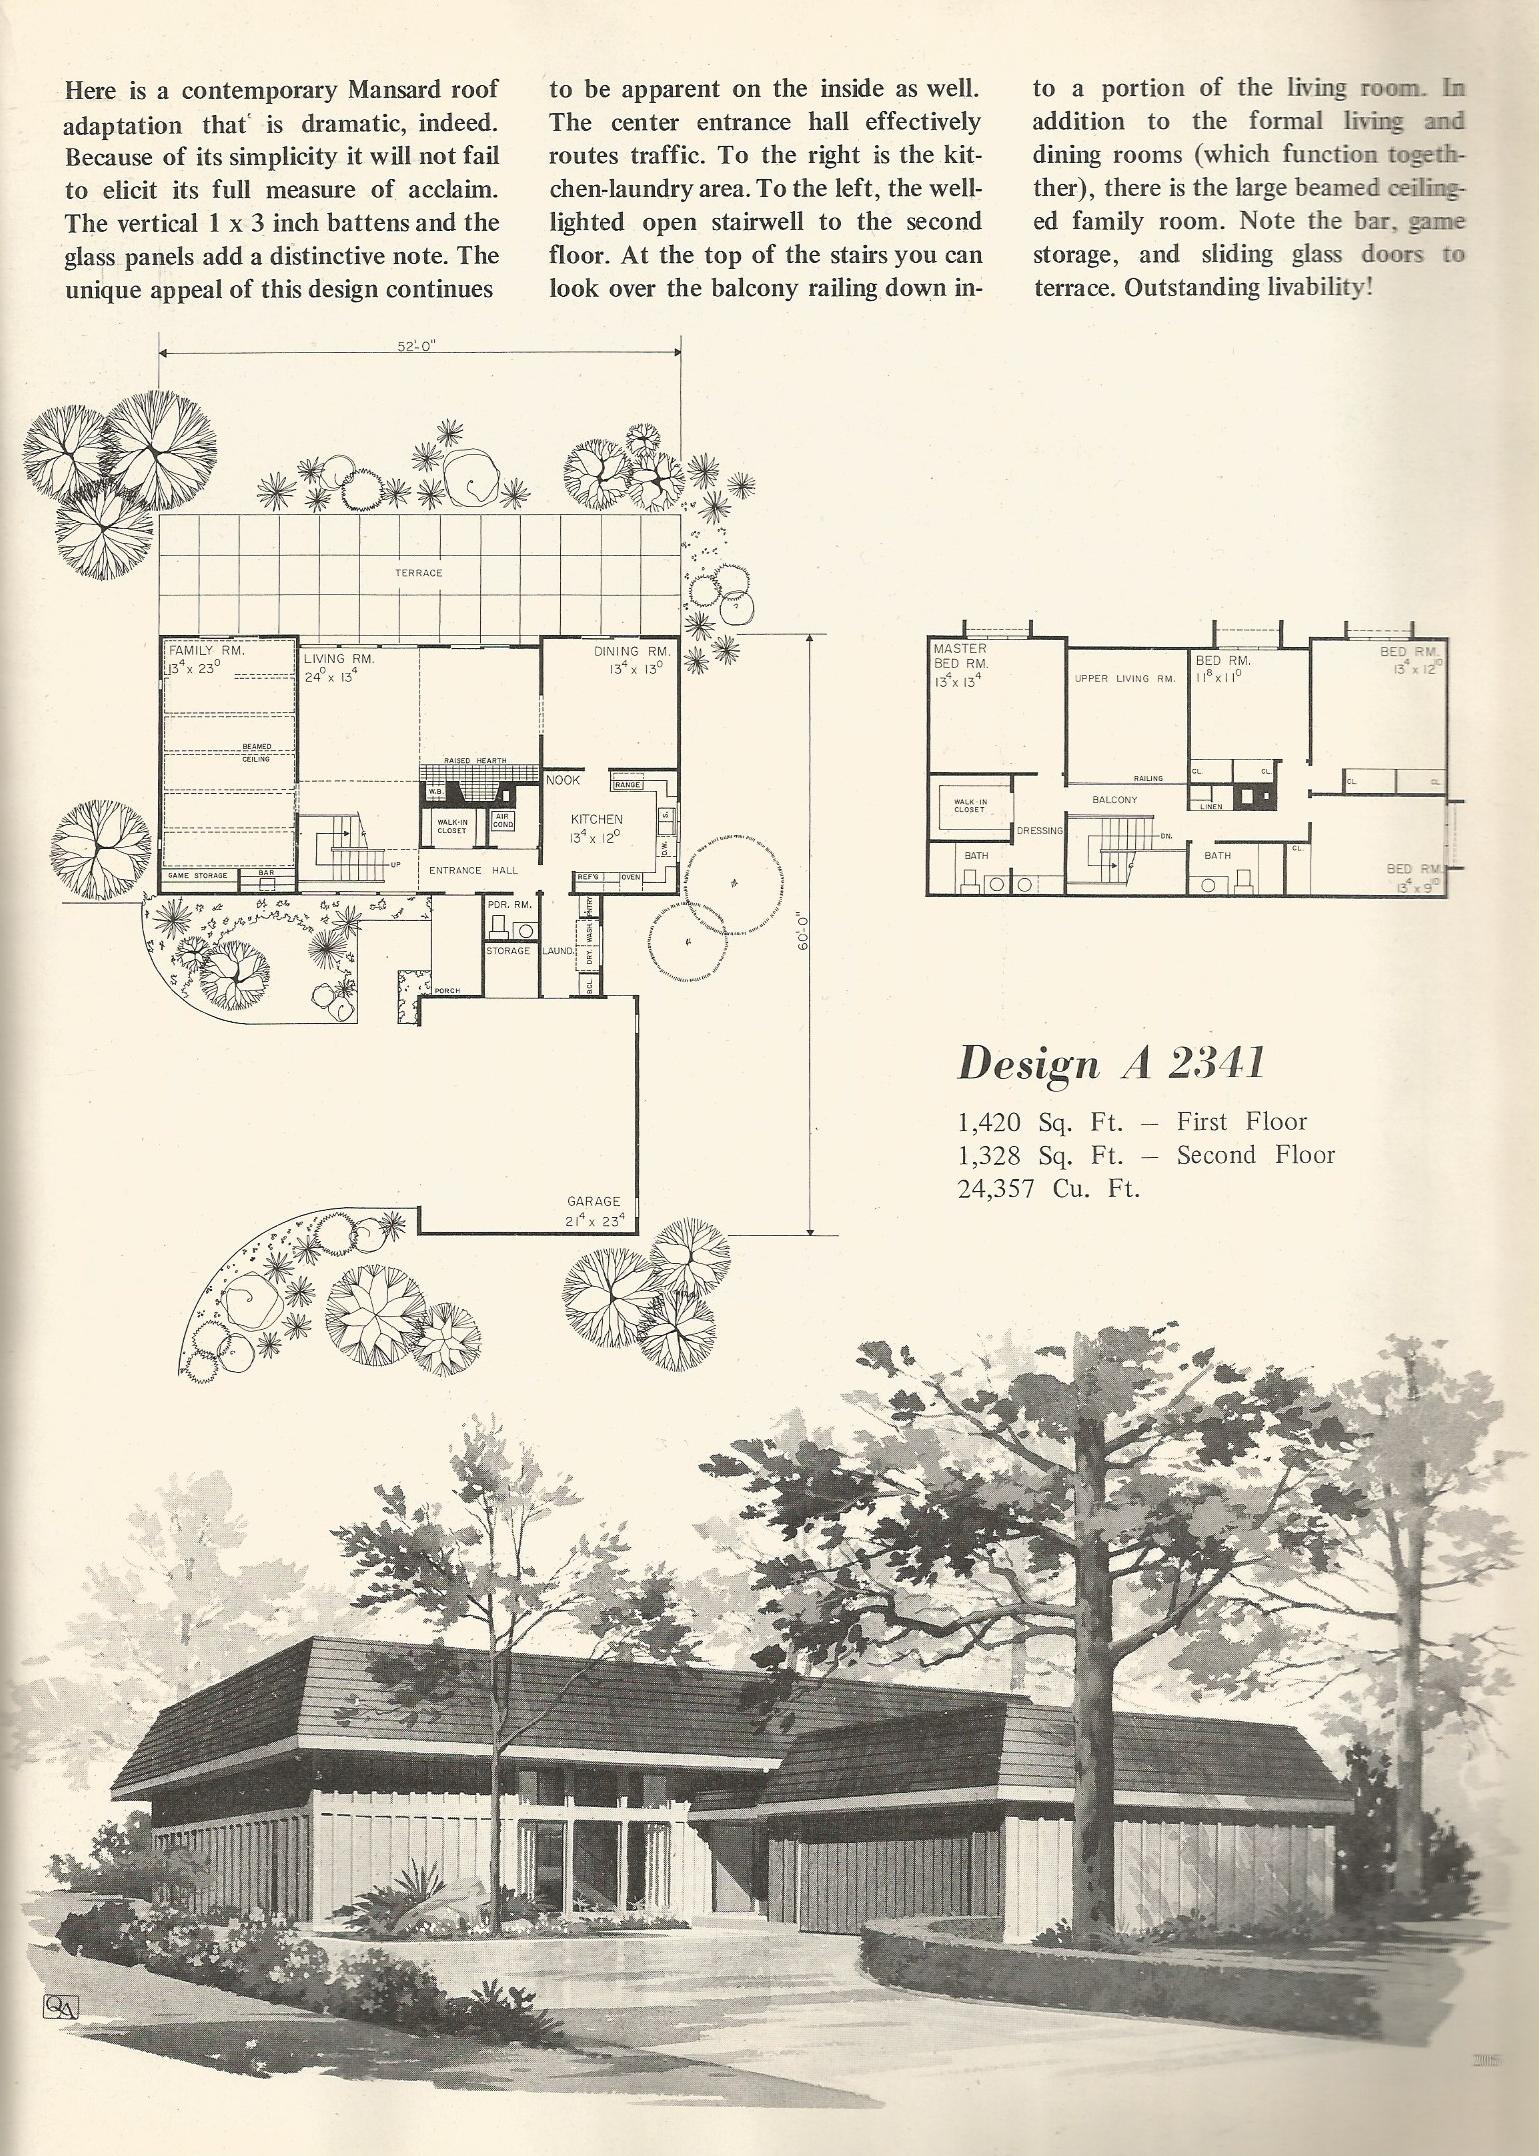 Vintage house plans 1970s contemporary designs part 2 for Retro modern house plans